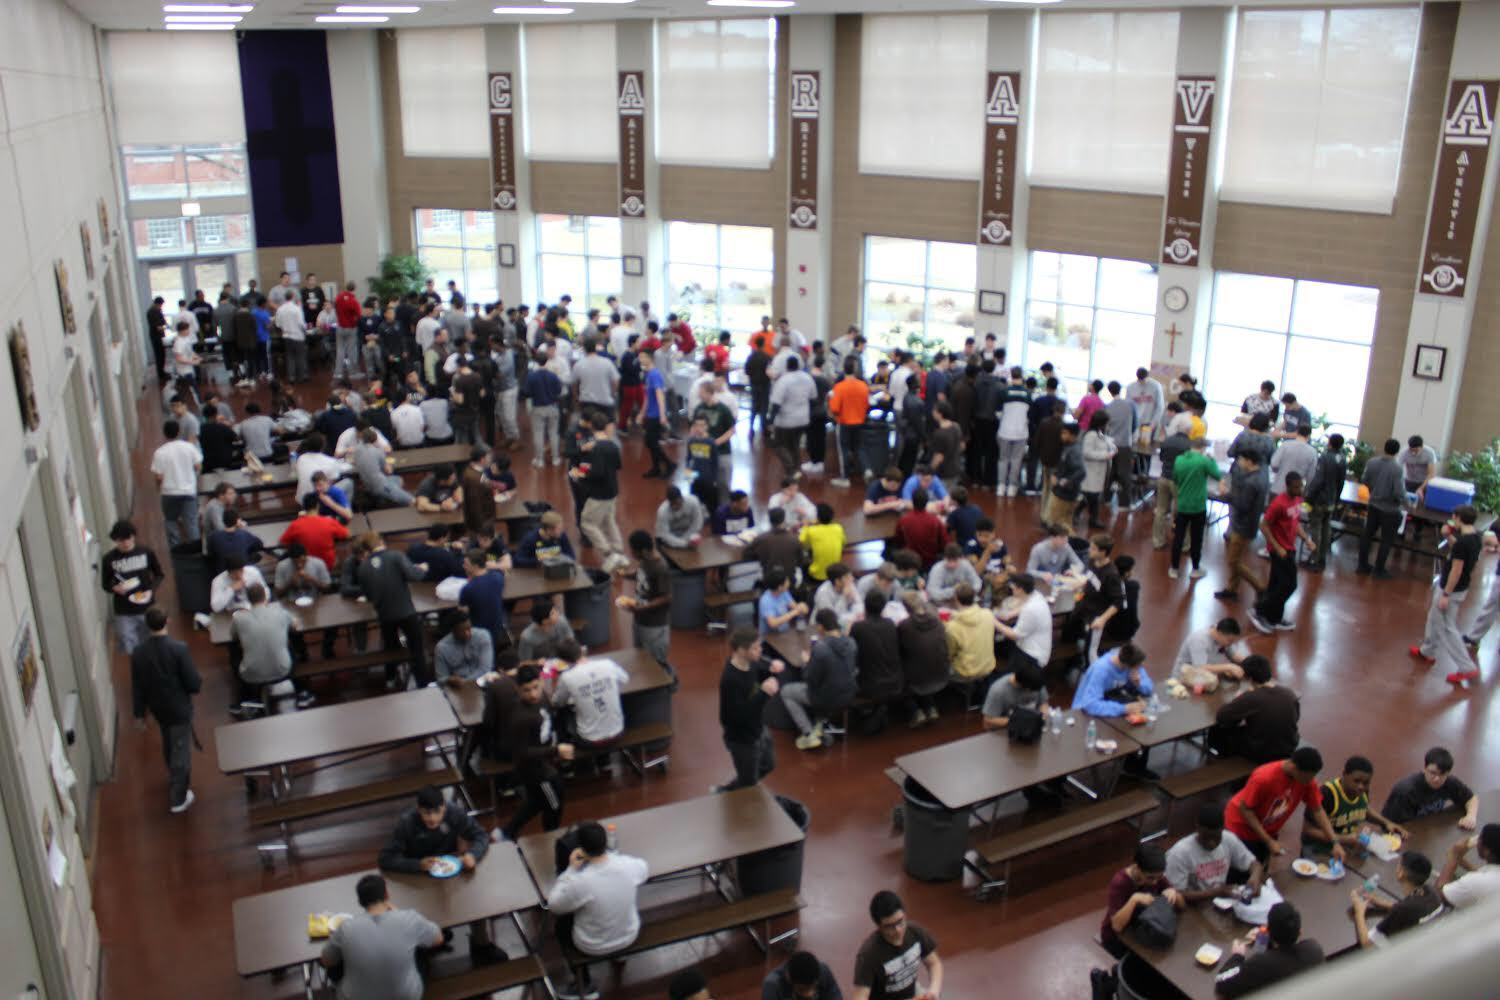 The Commons was packed for the Taste of MC